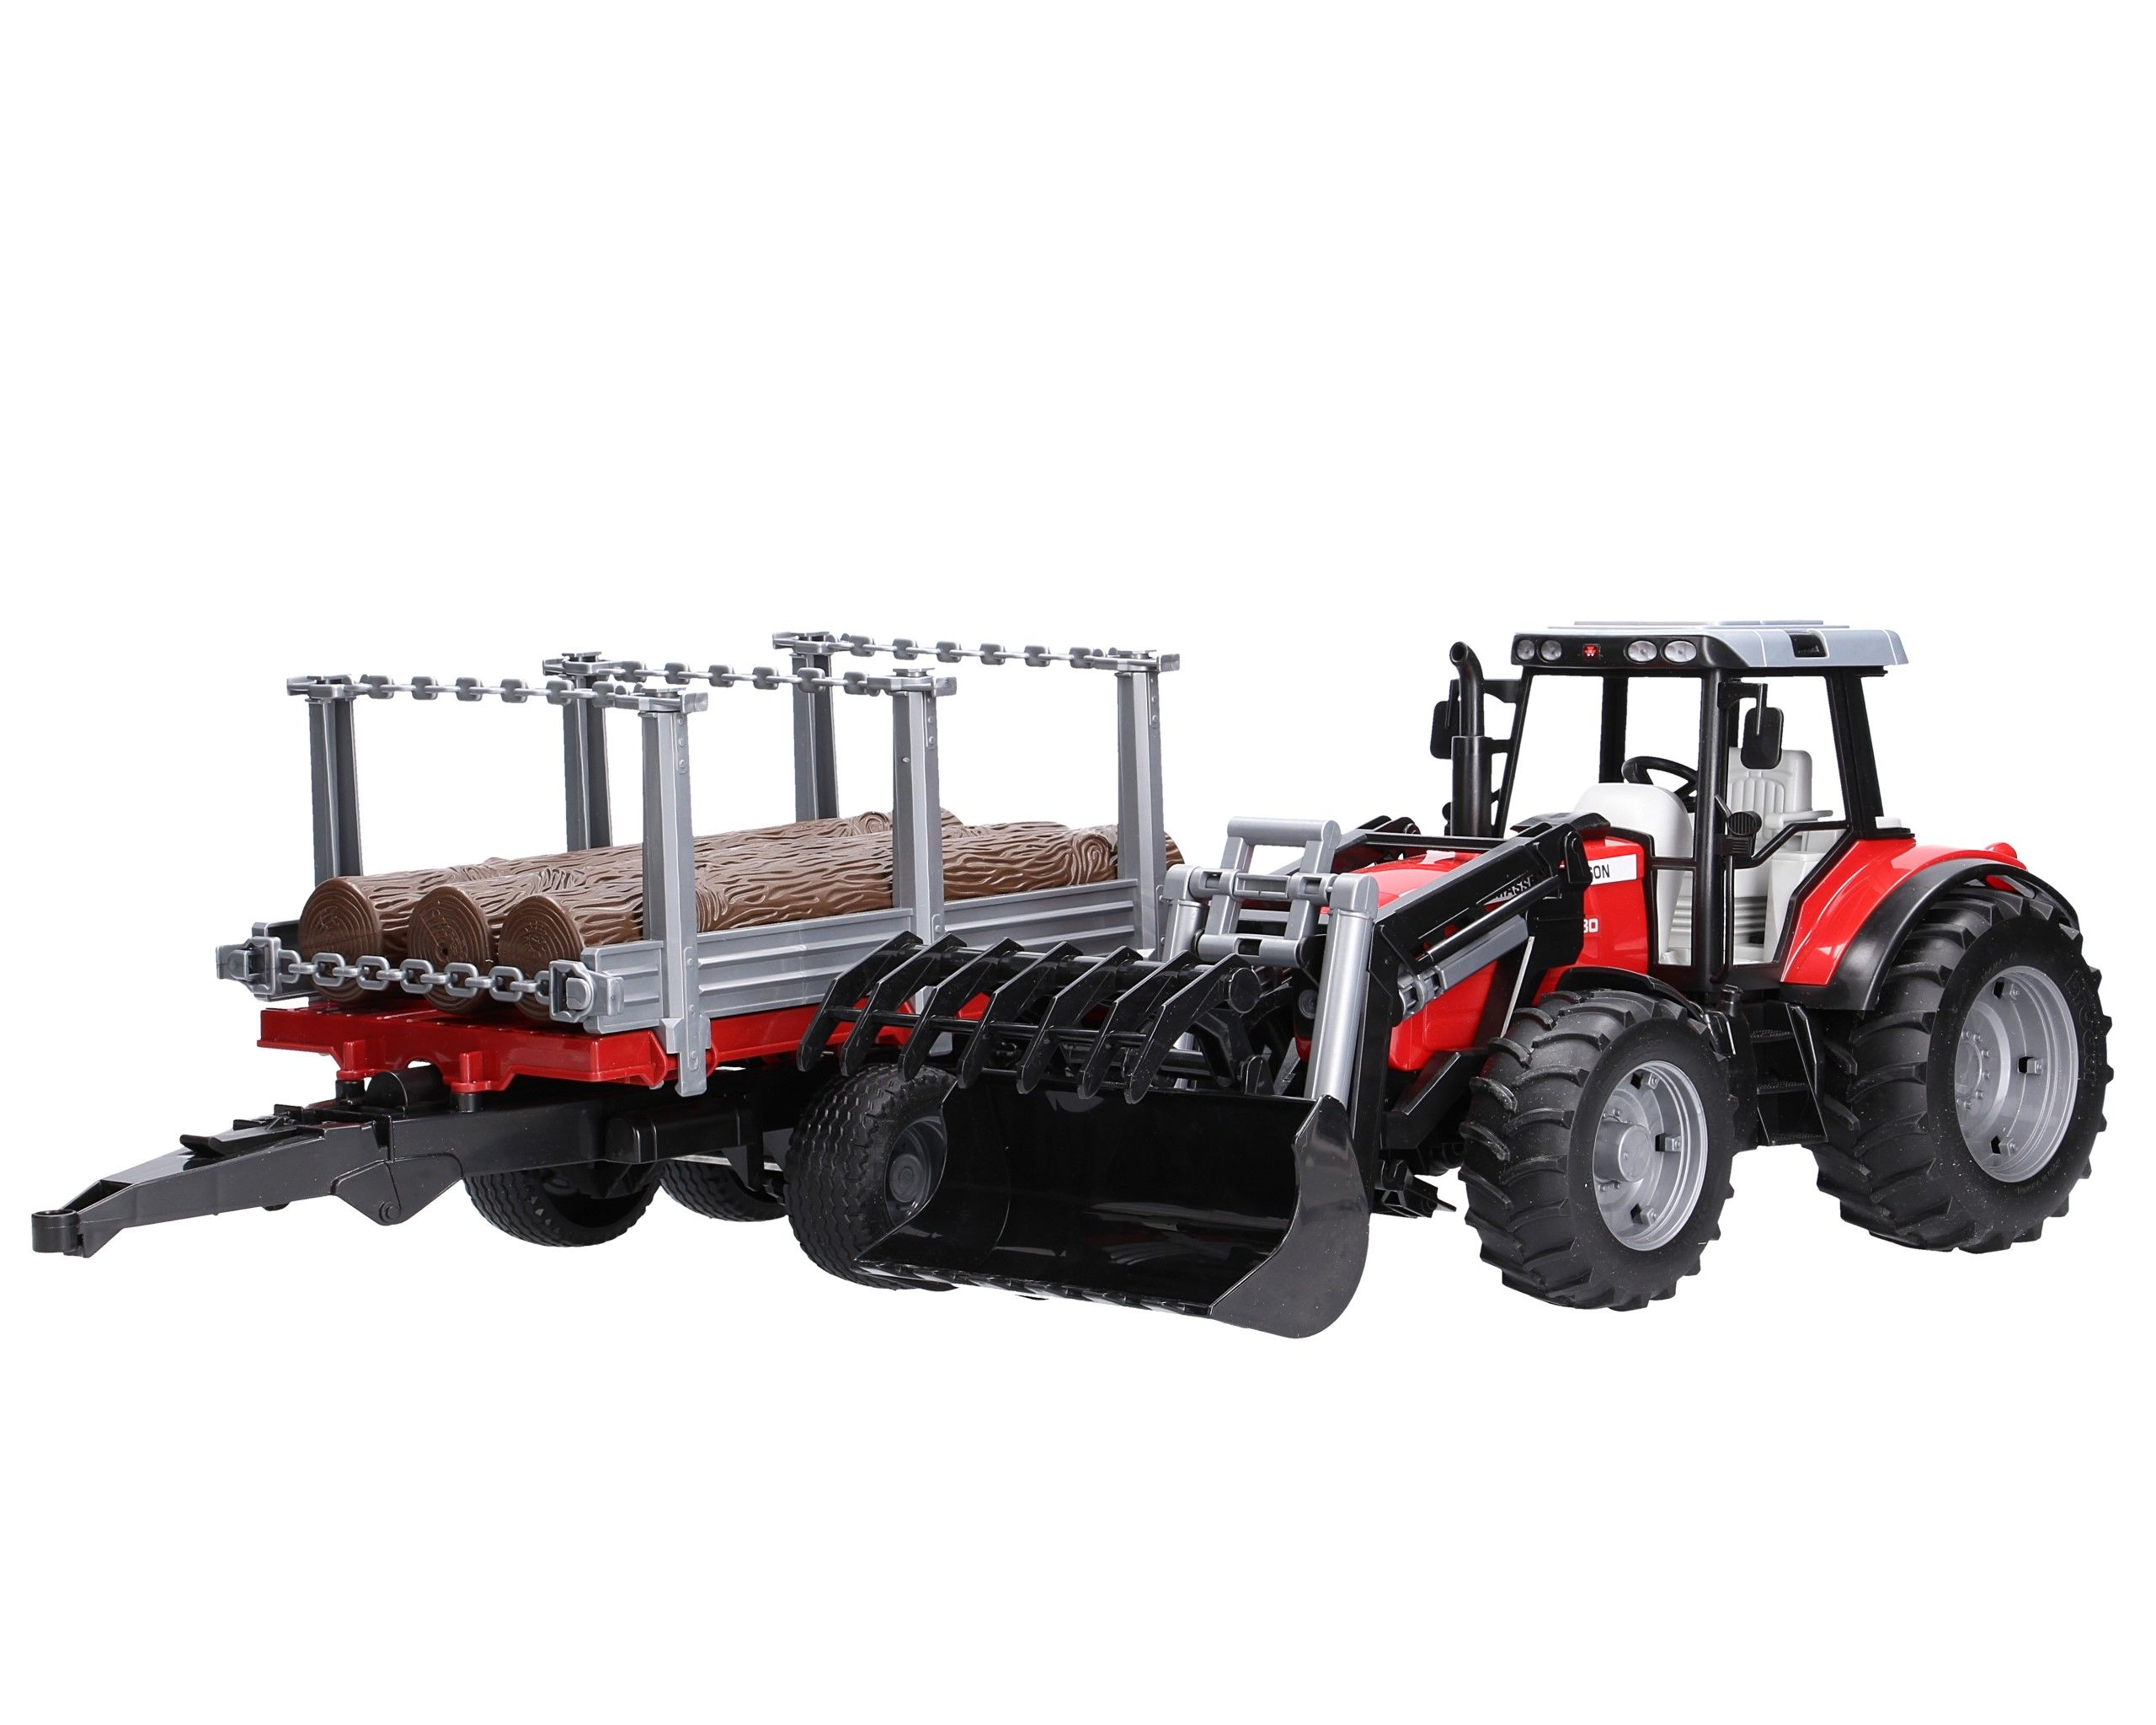 Bruder #02046 Massey Ferguson 7480 with Frontloader and Logging Trailer - New Factory Sealed